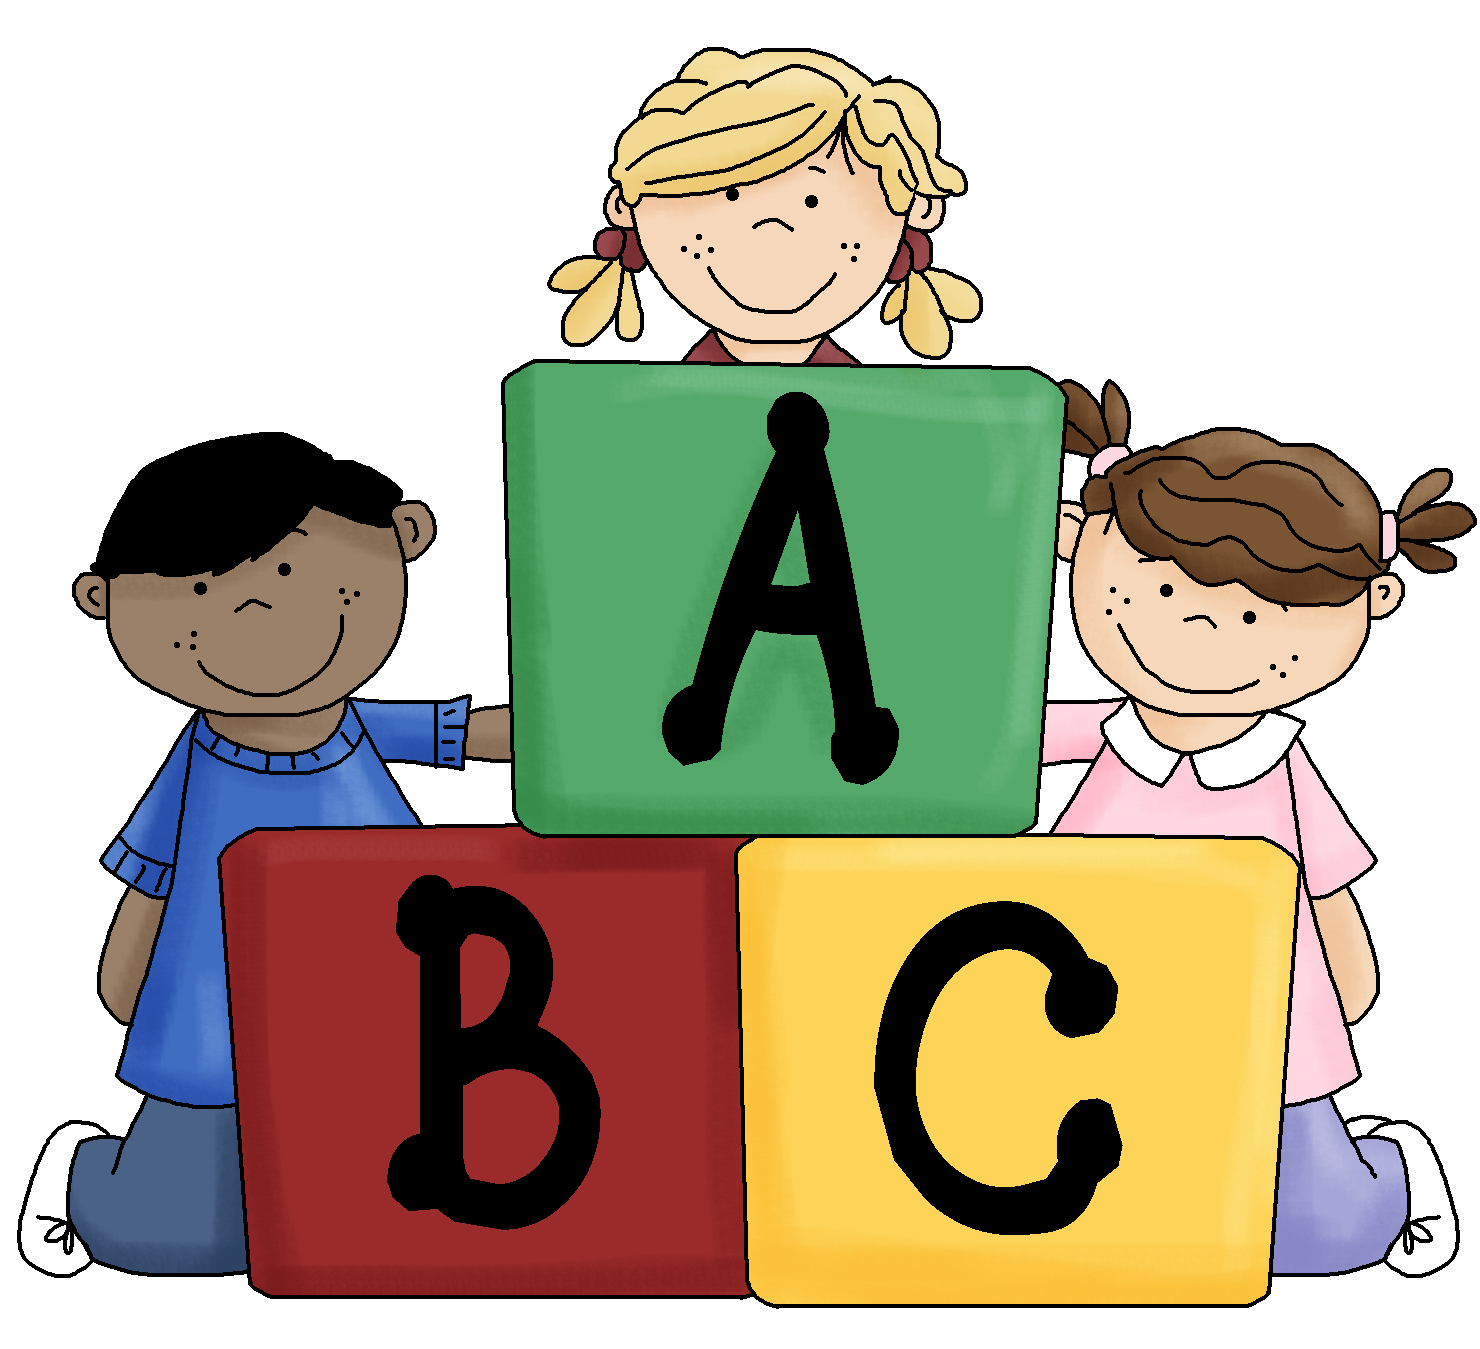 abc blocks clipart at getdrawings com free for personal use abc rh getdrawings com abc clip art images abc clip art letters